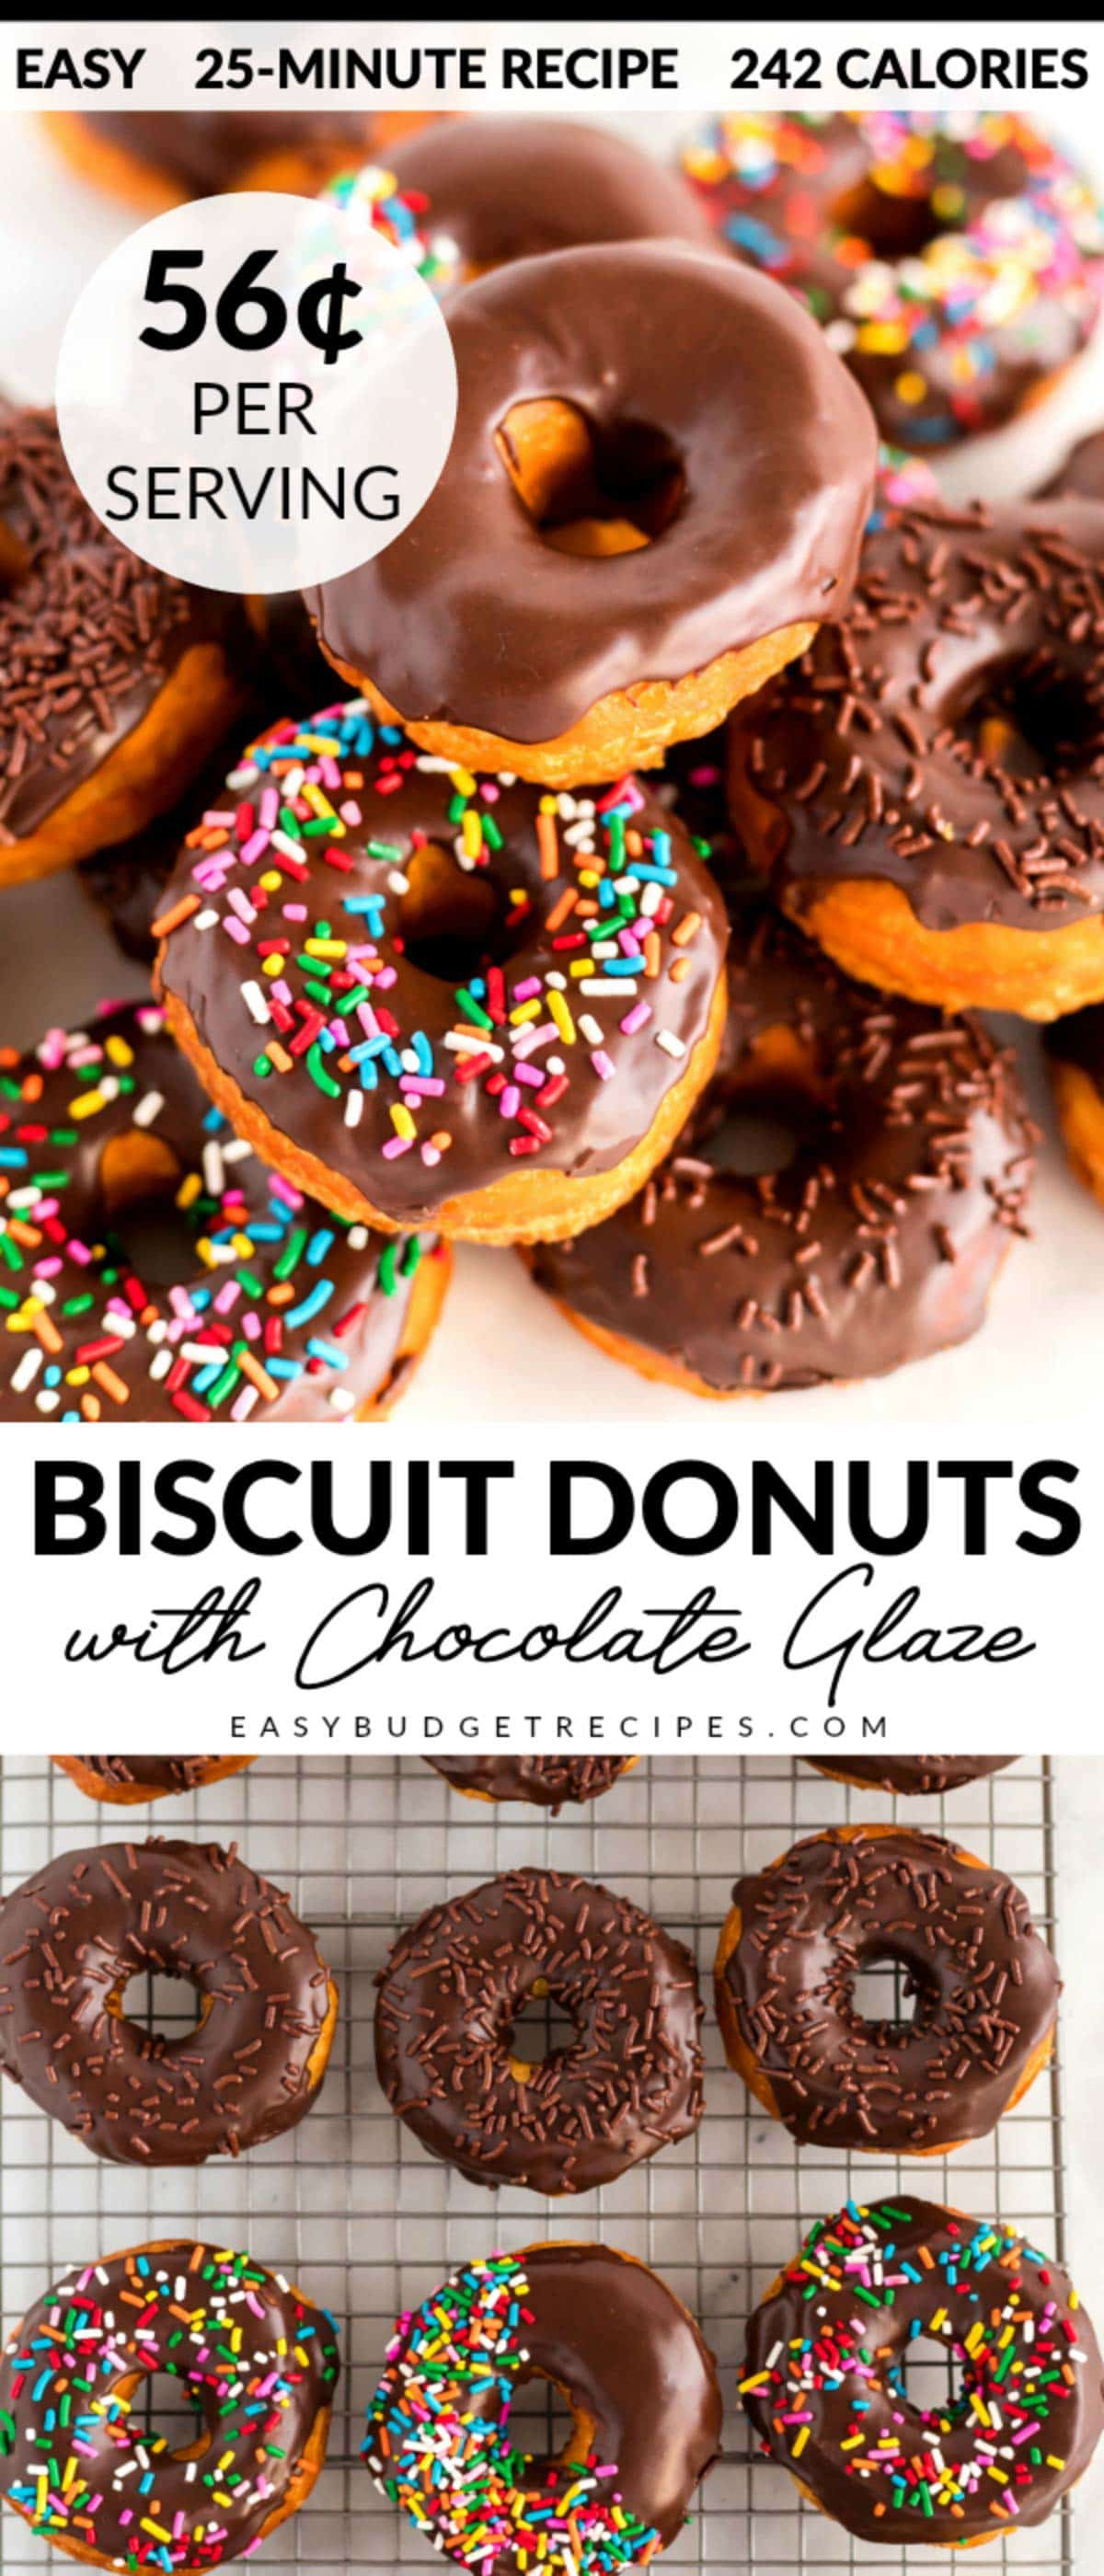 Chocolate Glazed Donuts are so easy and take just 25 minutes to make 16 and 16 donut holes! They cost $8.89 to make, that's 56¢ per serving! via @easybudgetrecipes